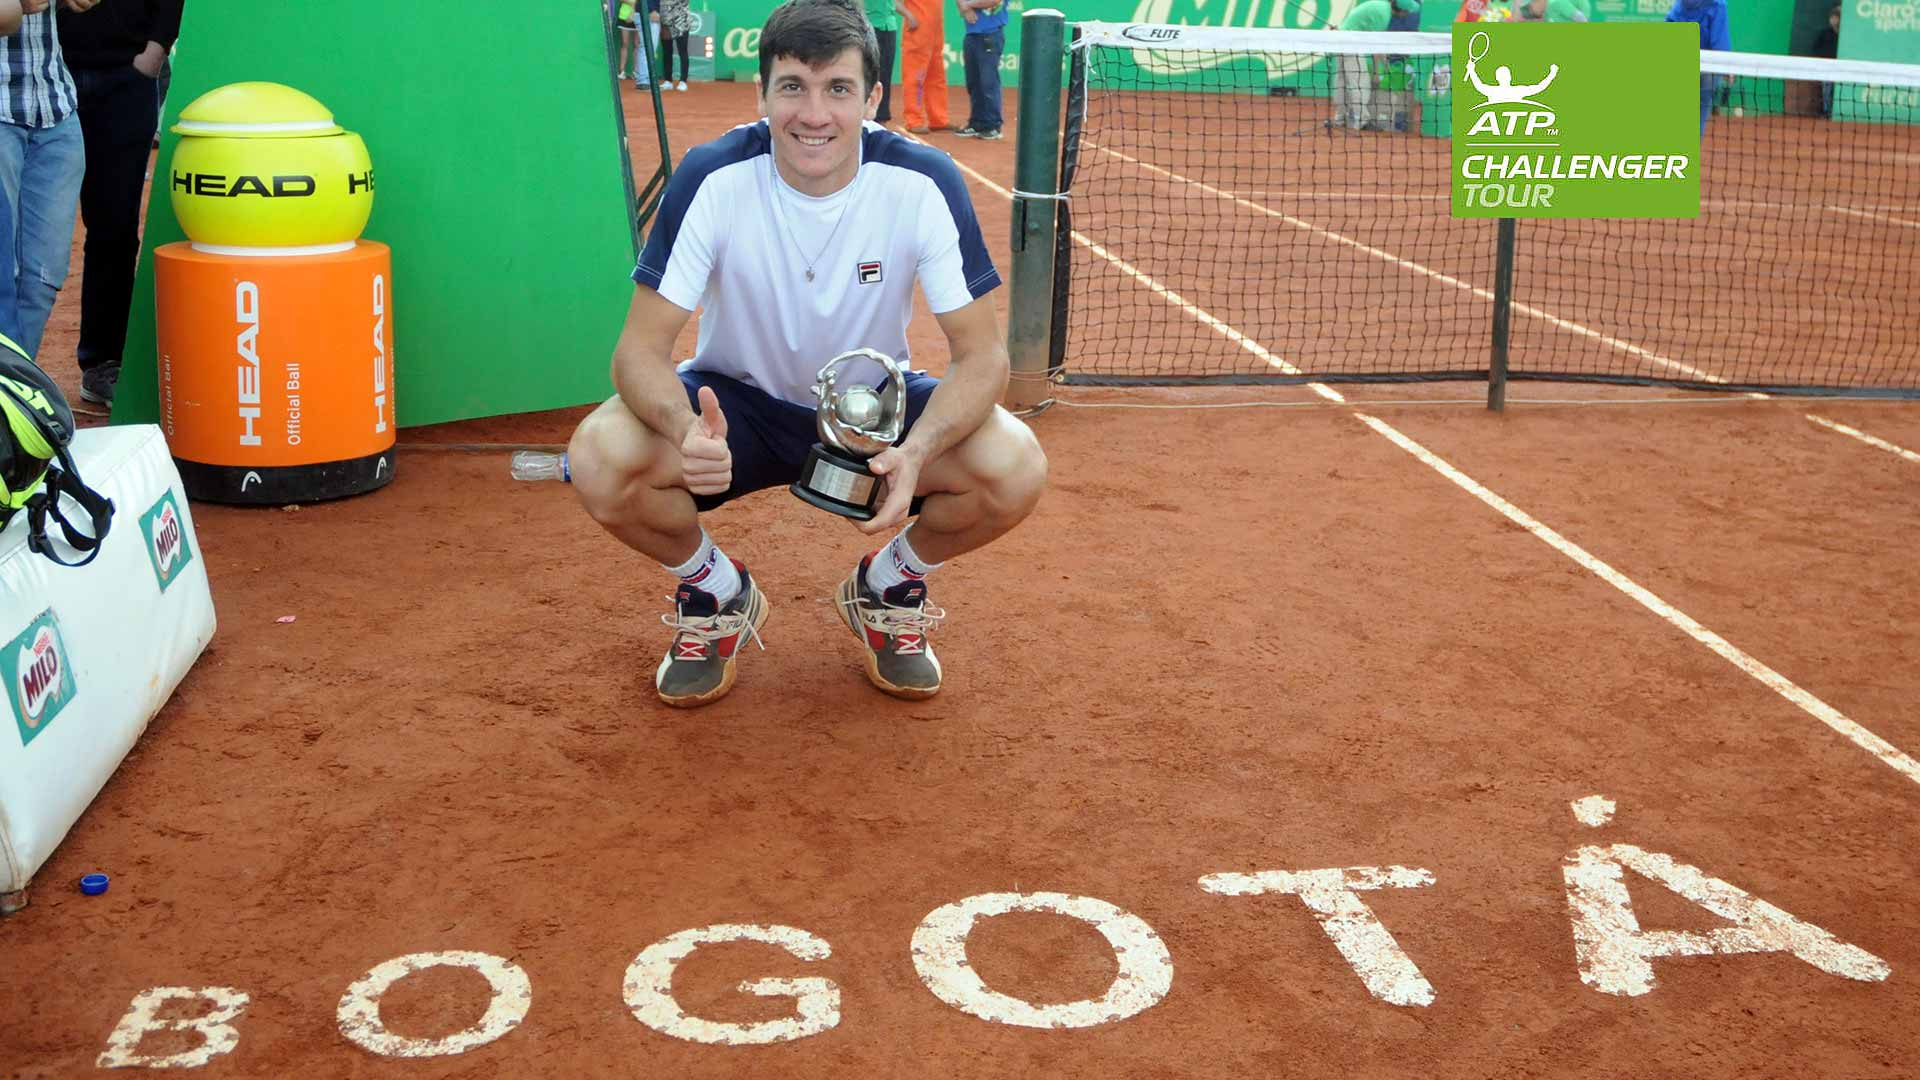 Facundo Bagnis wraps up his outstanding ATP Challenger Tour season in Bogota.